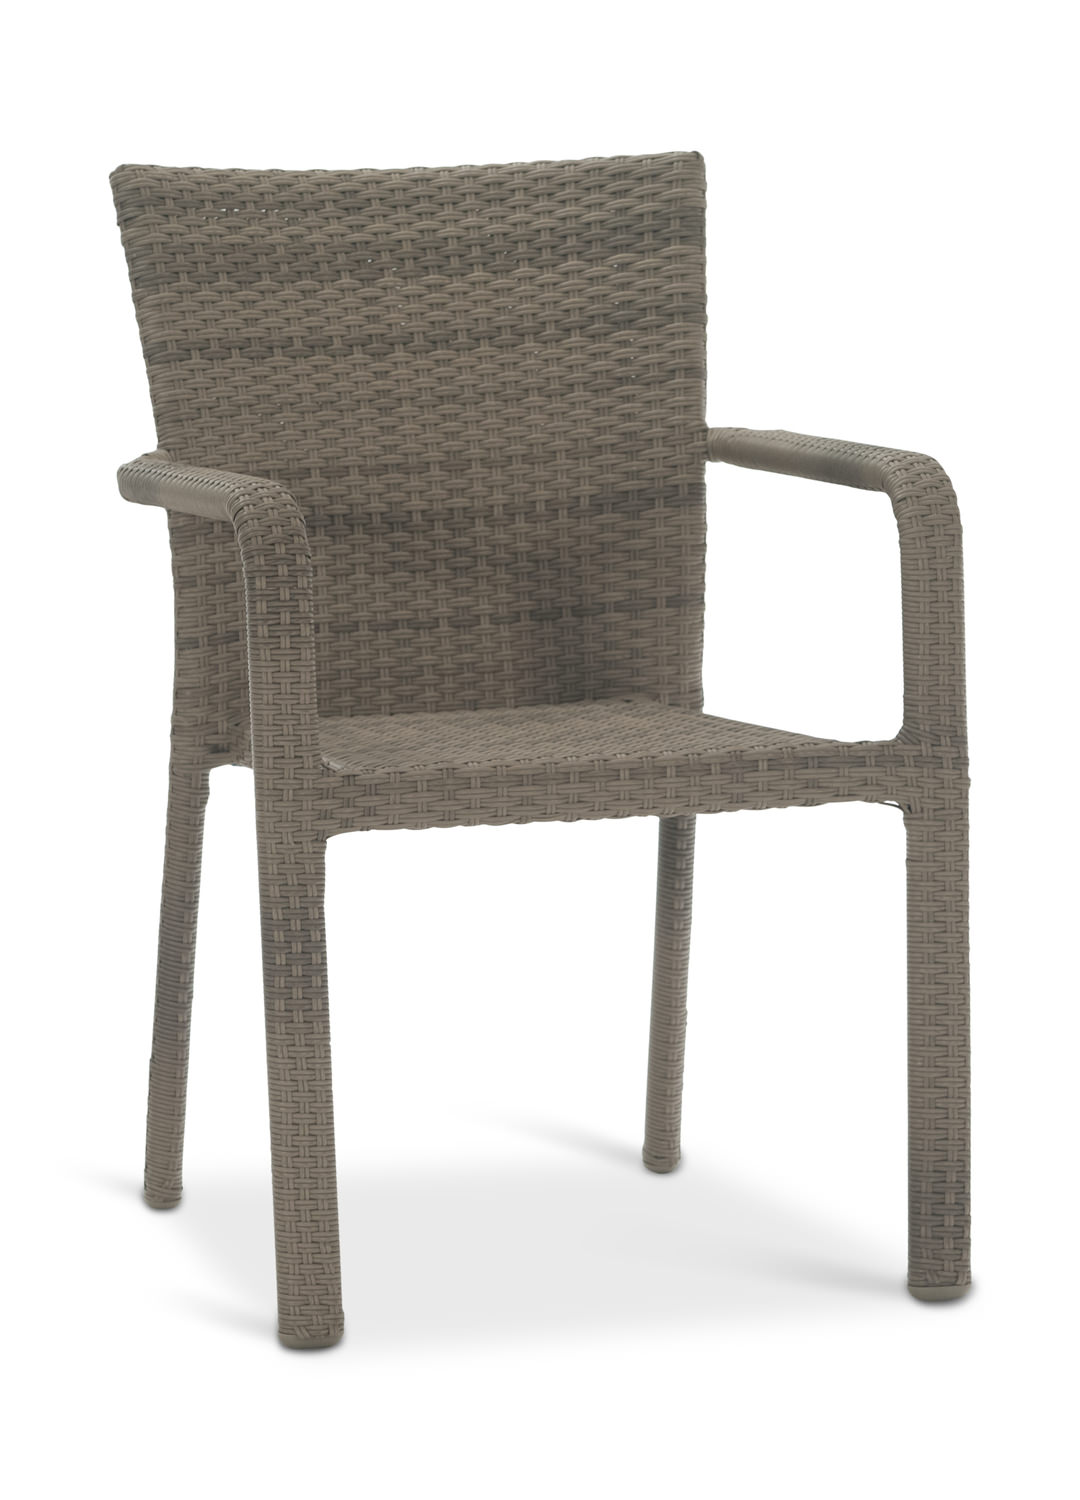 Napa Zen Chair By Patio Renaissance Hom Furniture